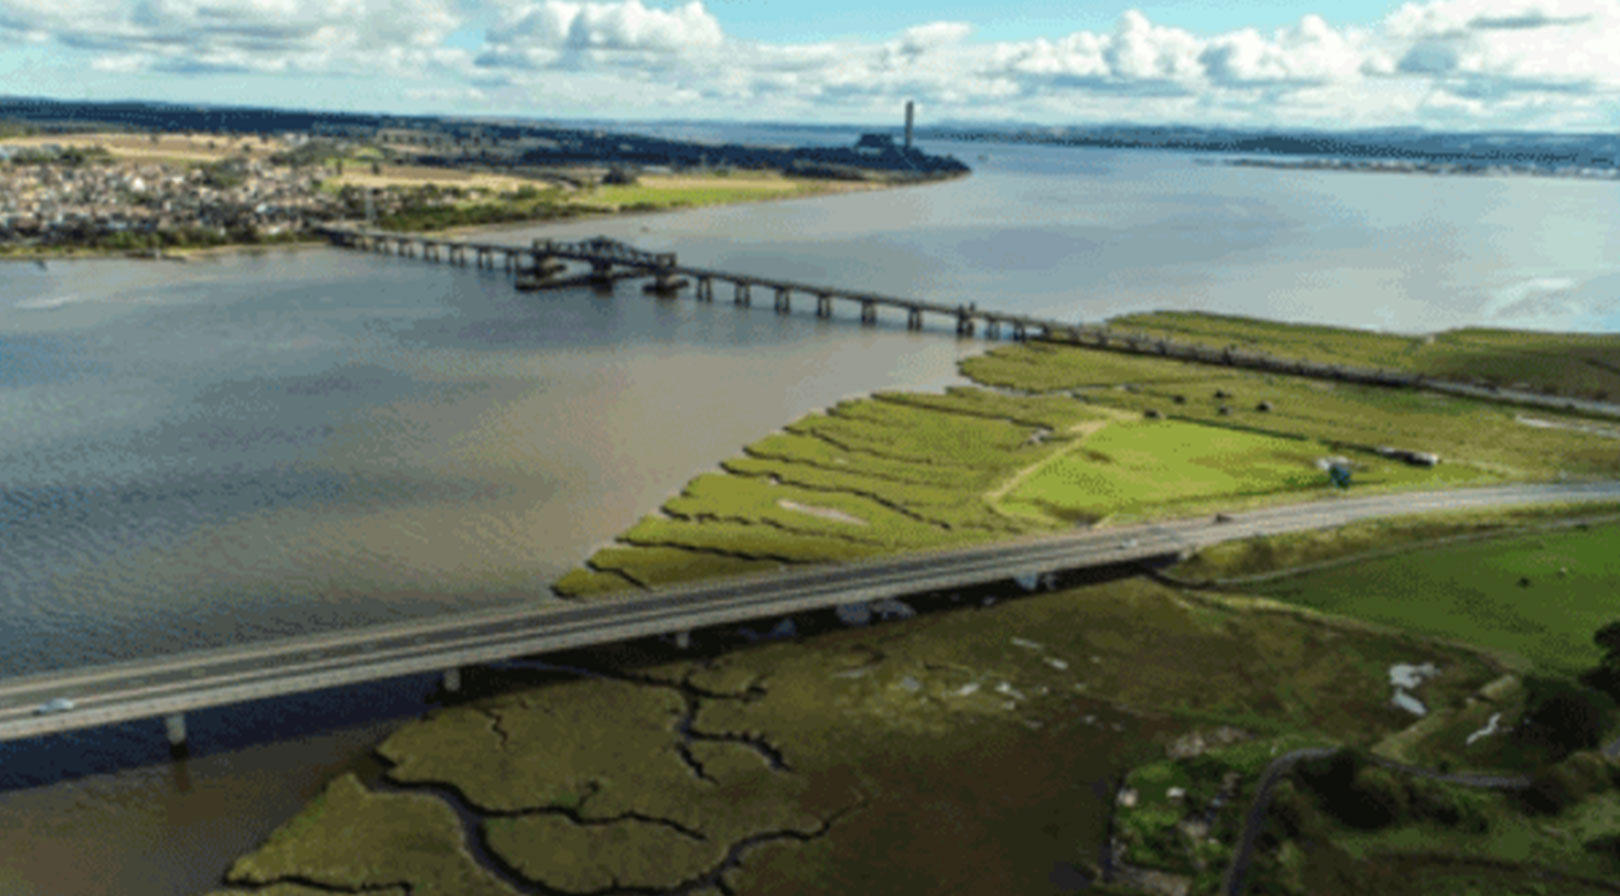 Paramics Discovery used to test the impact of maintenance works on the Kincardine Bridge